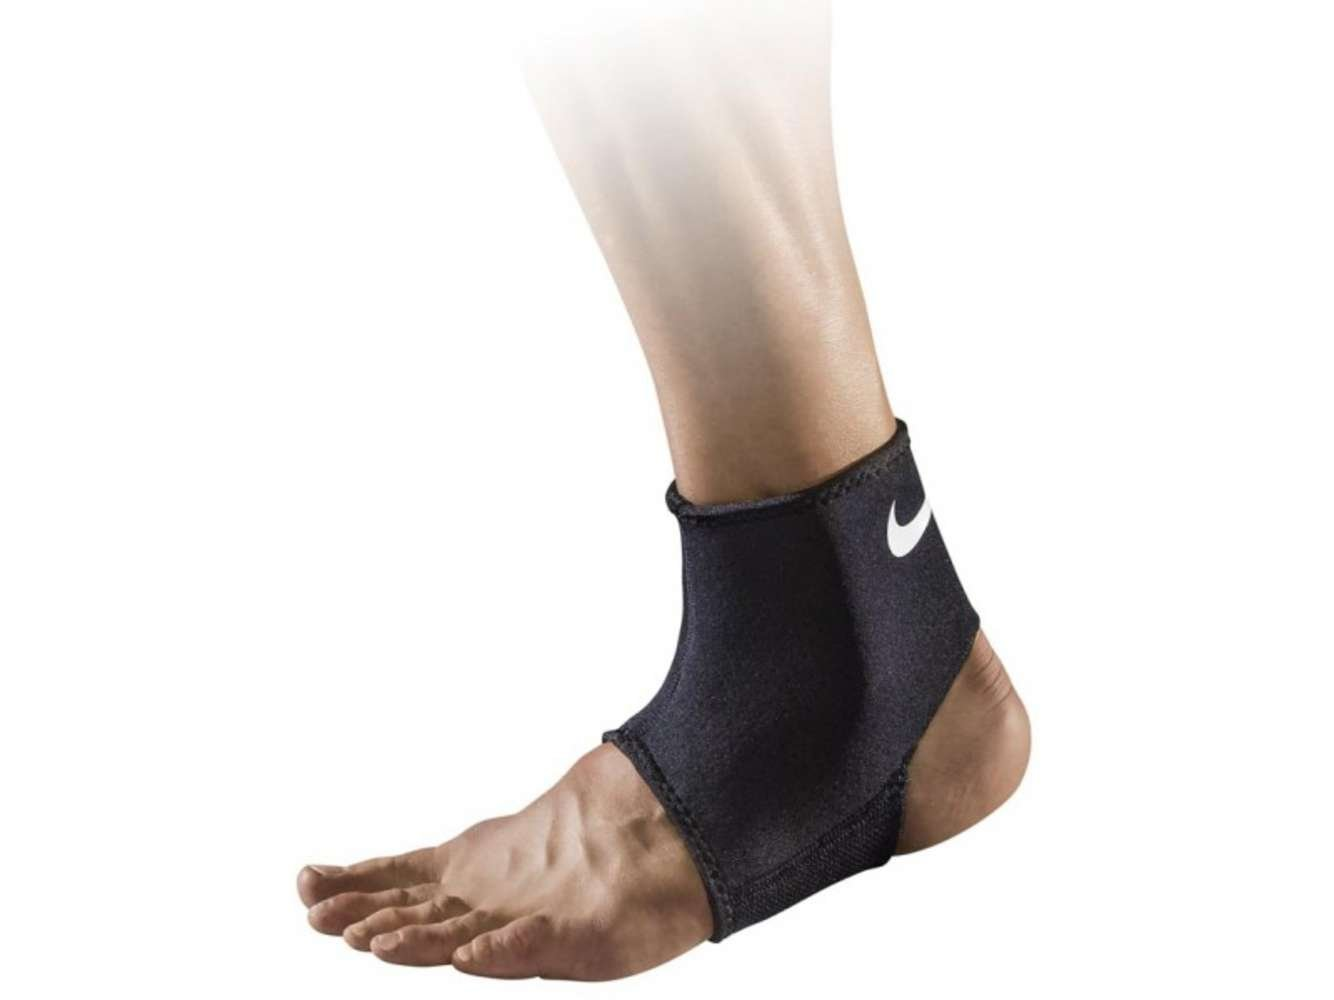 Nike Pro Ankle Sleeve 2.0 - Small